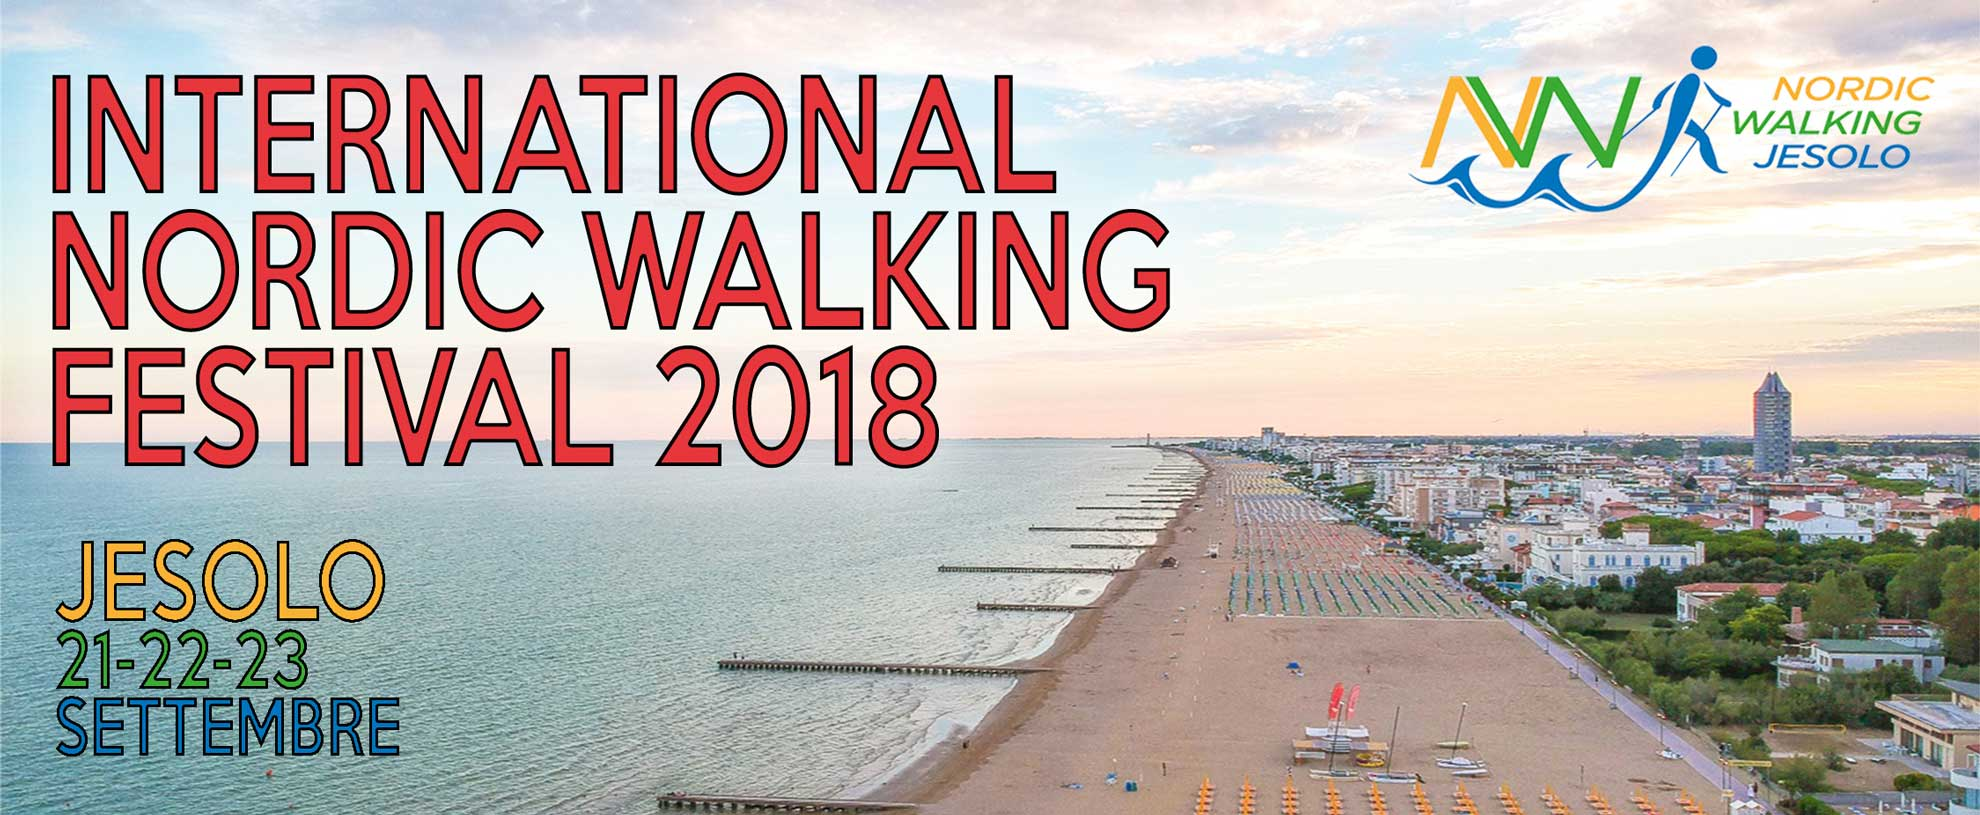 International Nordic Walking Festival 2018 Jesolo